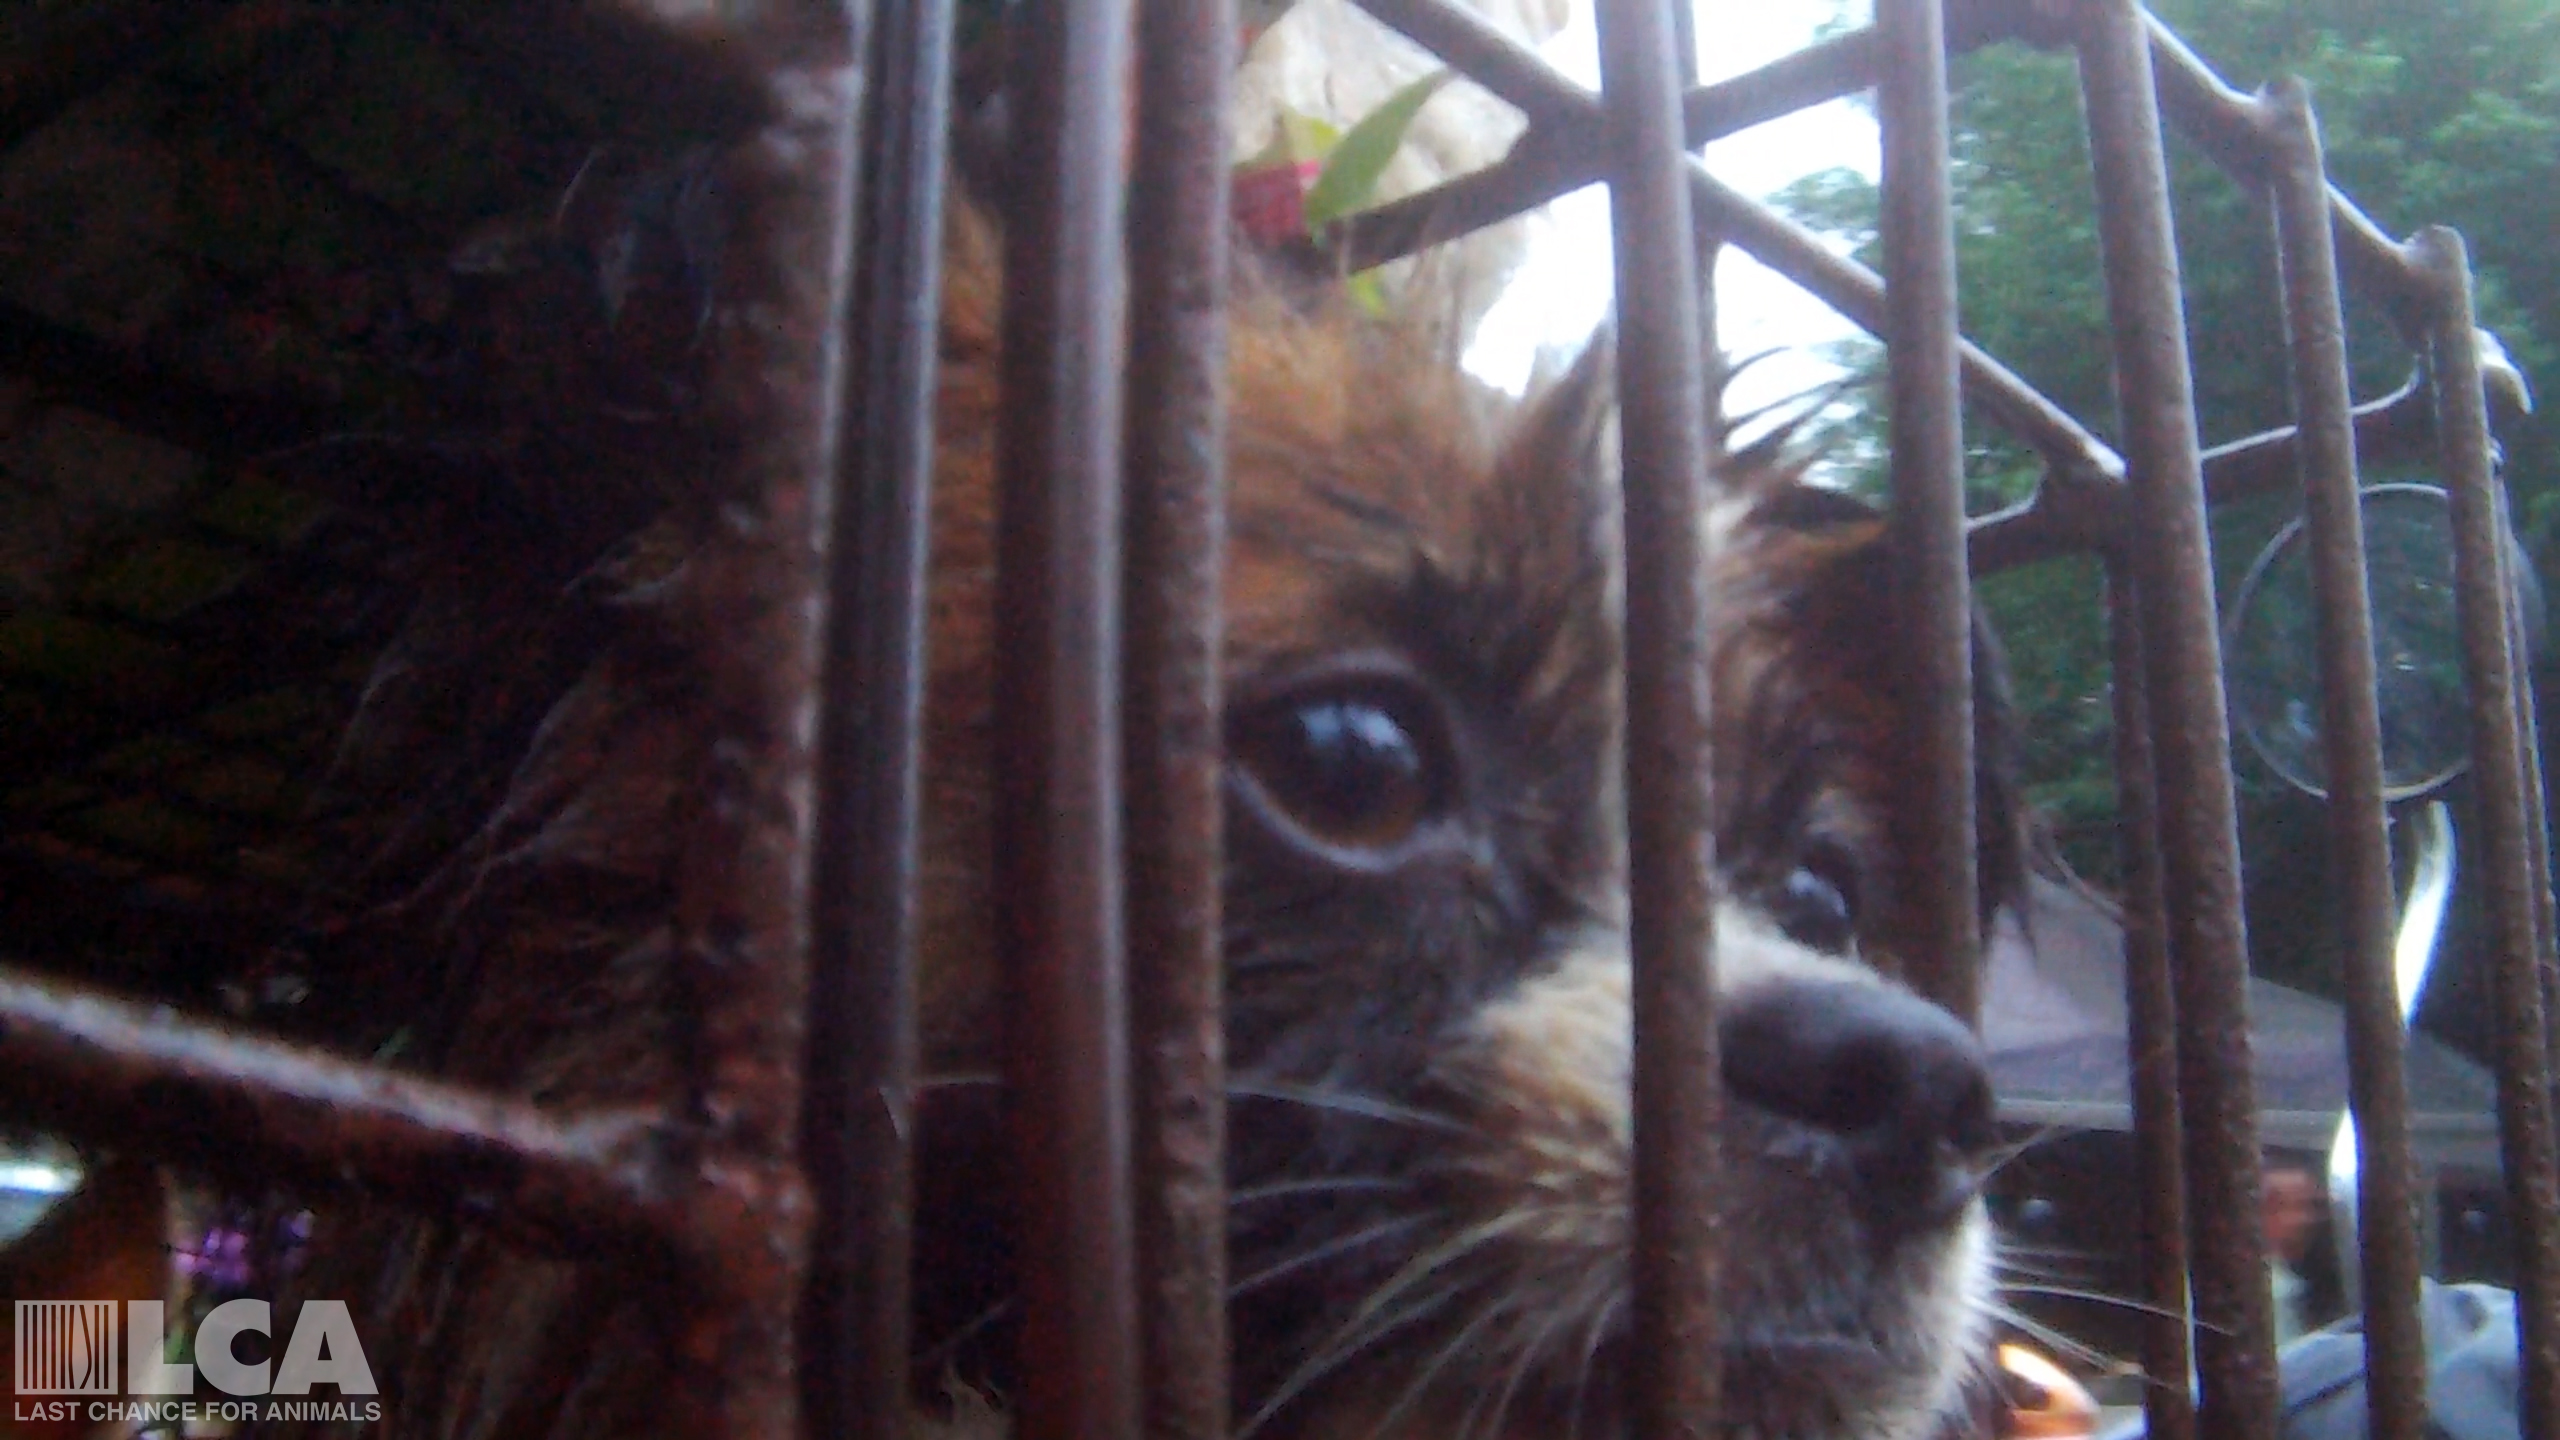 Last Chance for Animals Exposes Severe Cruelty Inside the ... - photo#15